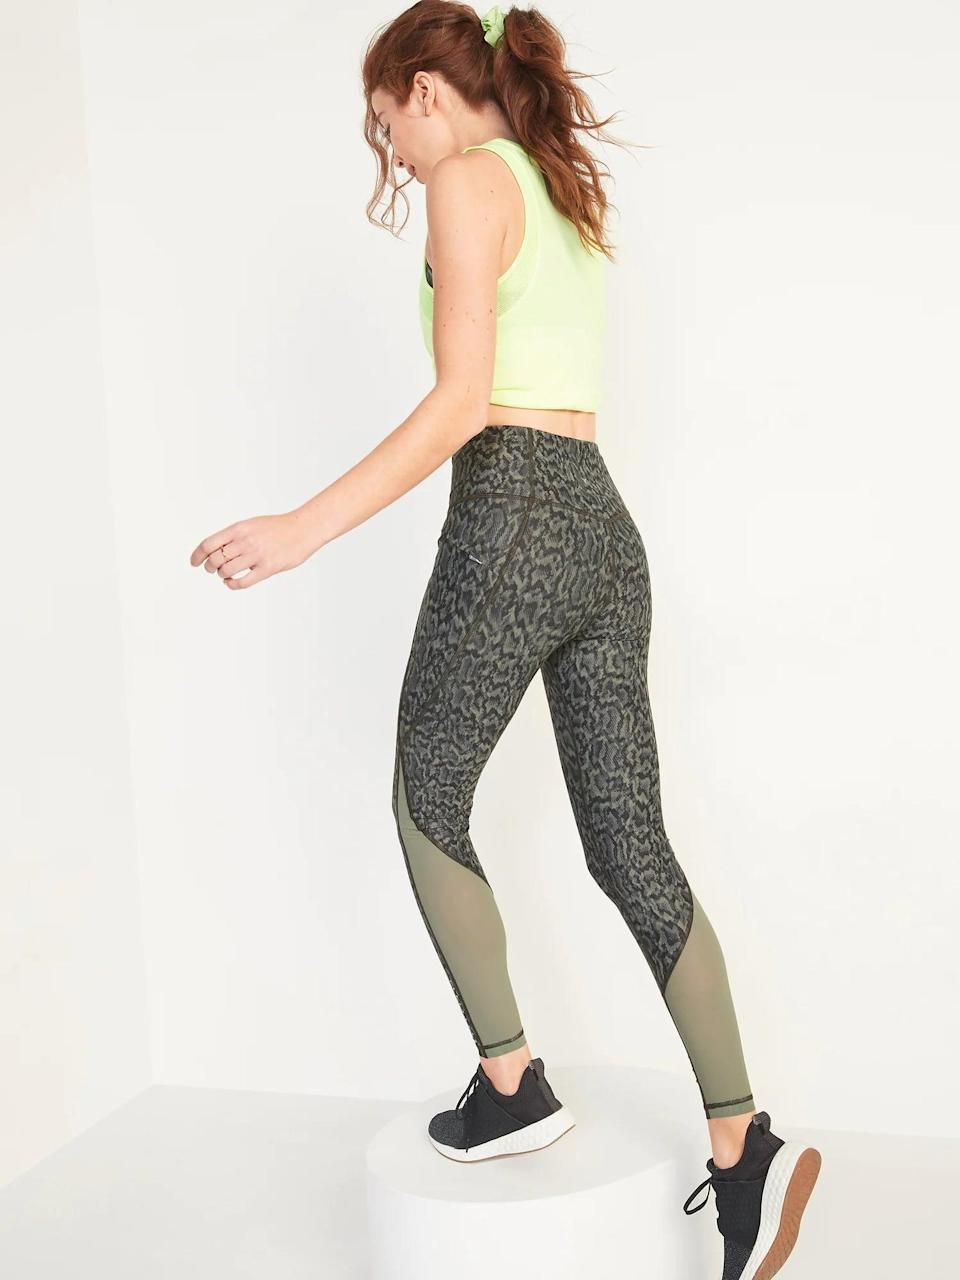 <p>Hit the streets on an outdoor jog thanks to these vented <span>Old Navy High-Waisted PowerSoft Run Leggings</span> ($16-$35, originally $45) with a zippered pocket, too.</p>